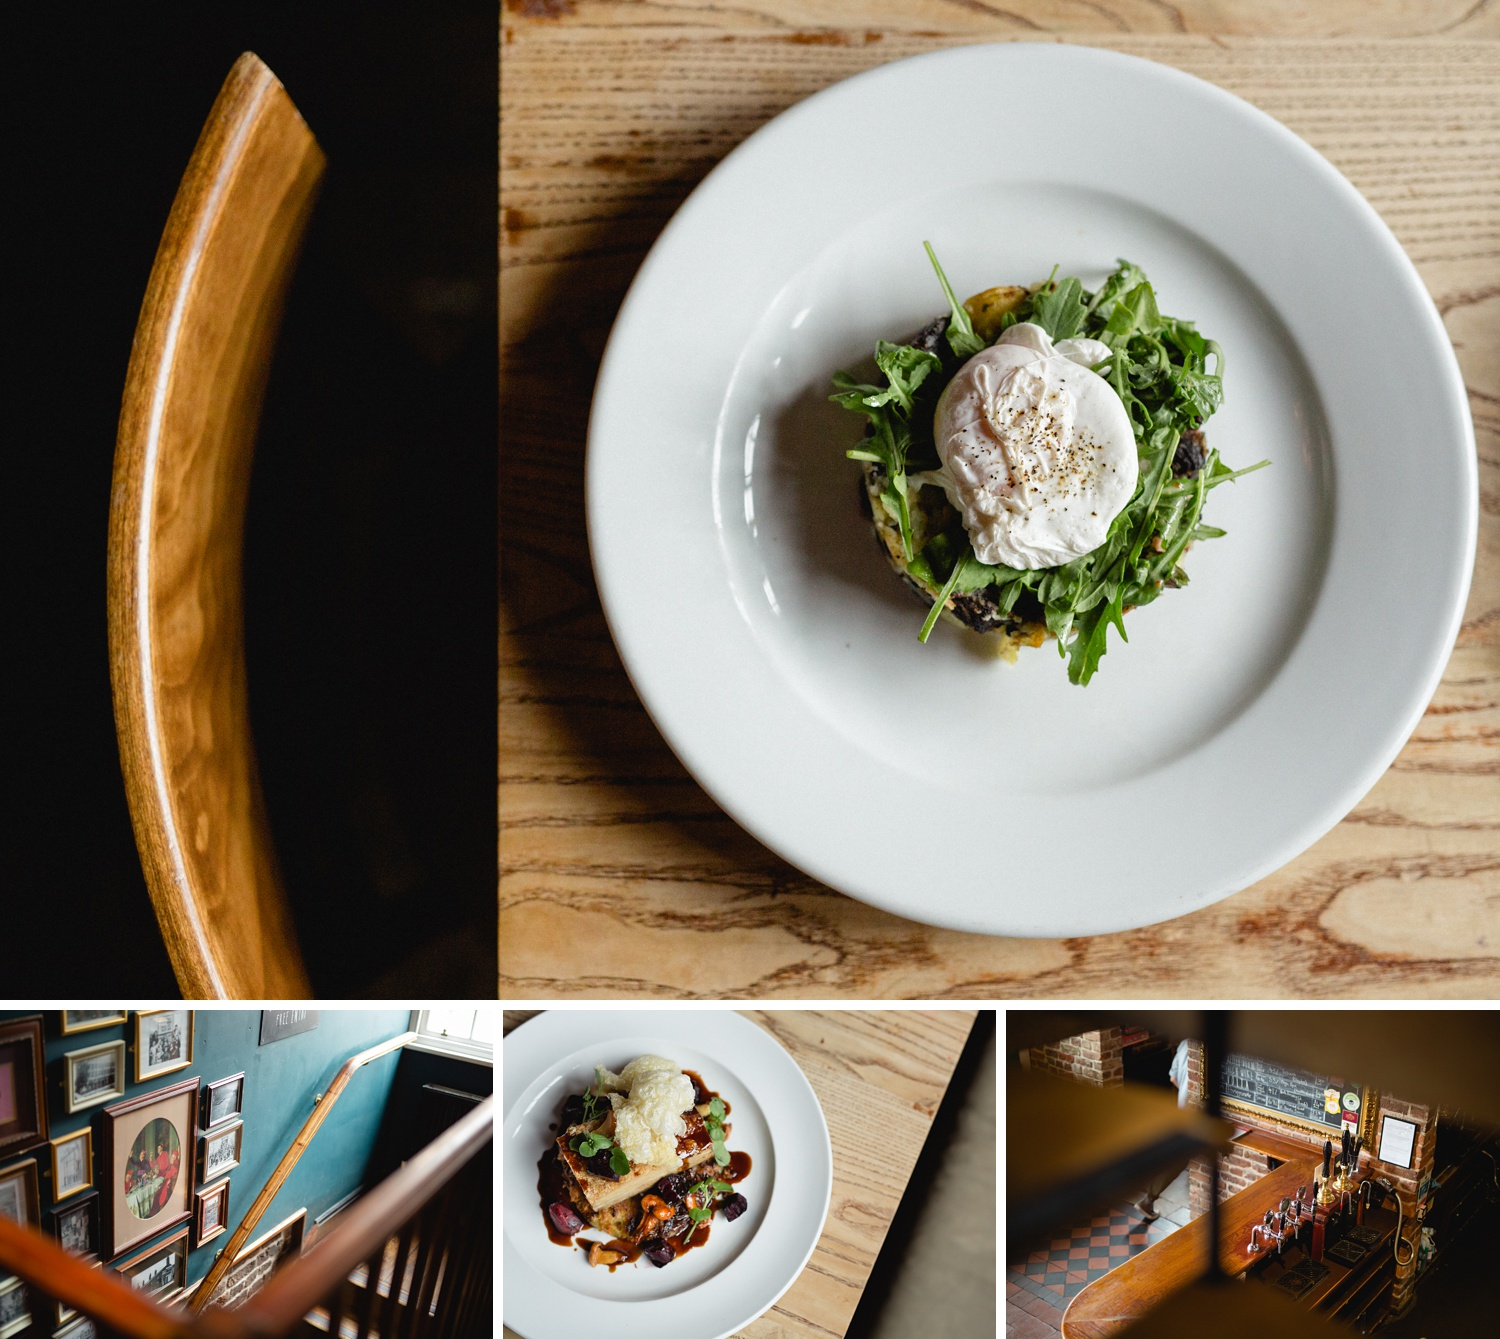 editorial food photography of meals at Cross keys in Leeds